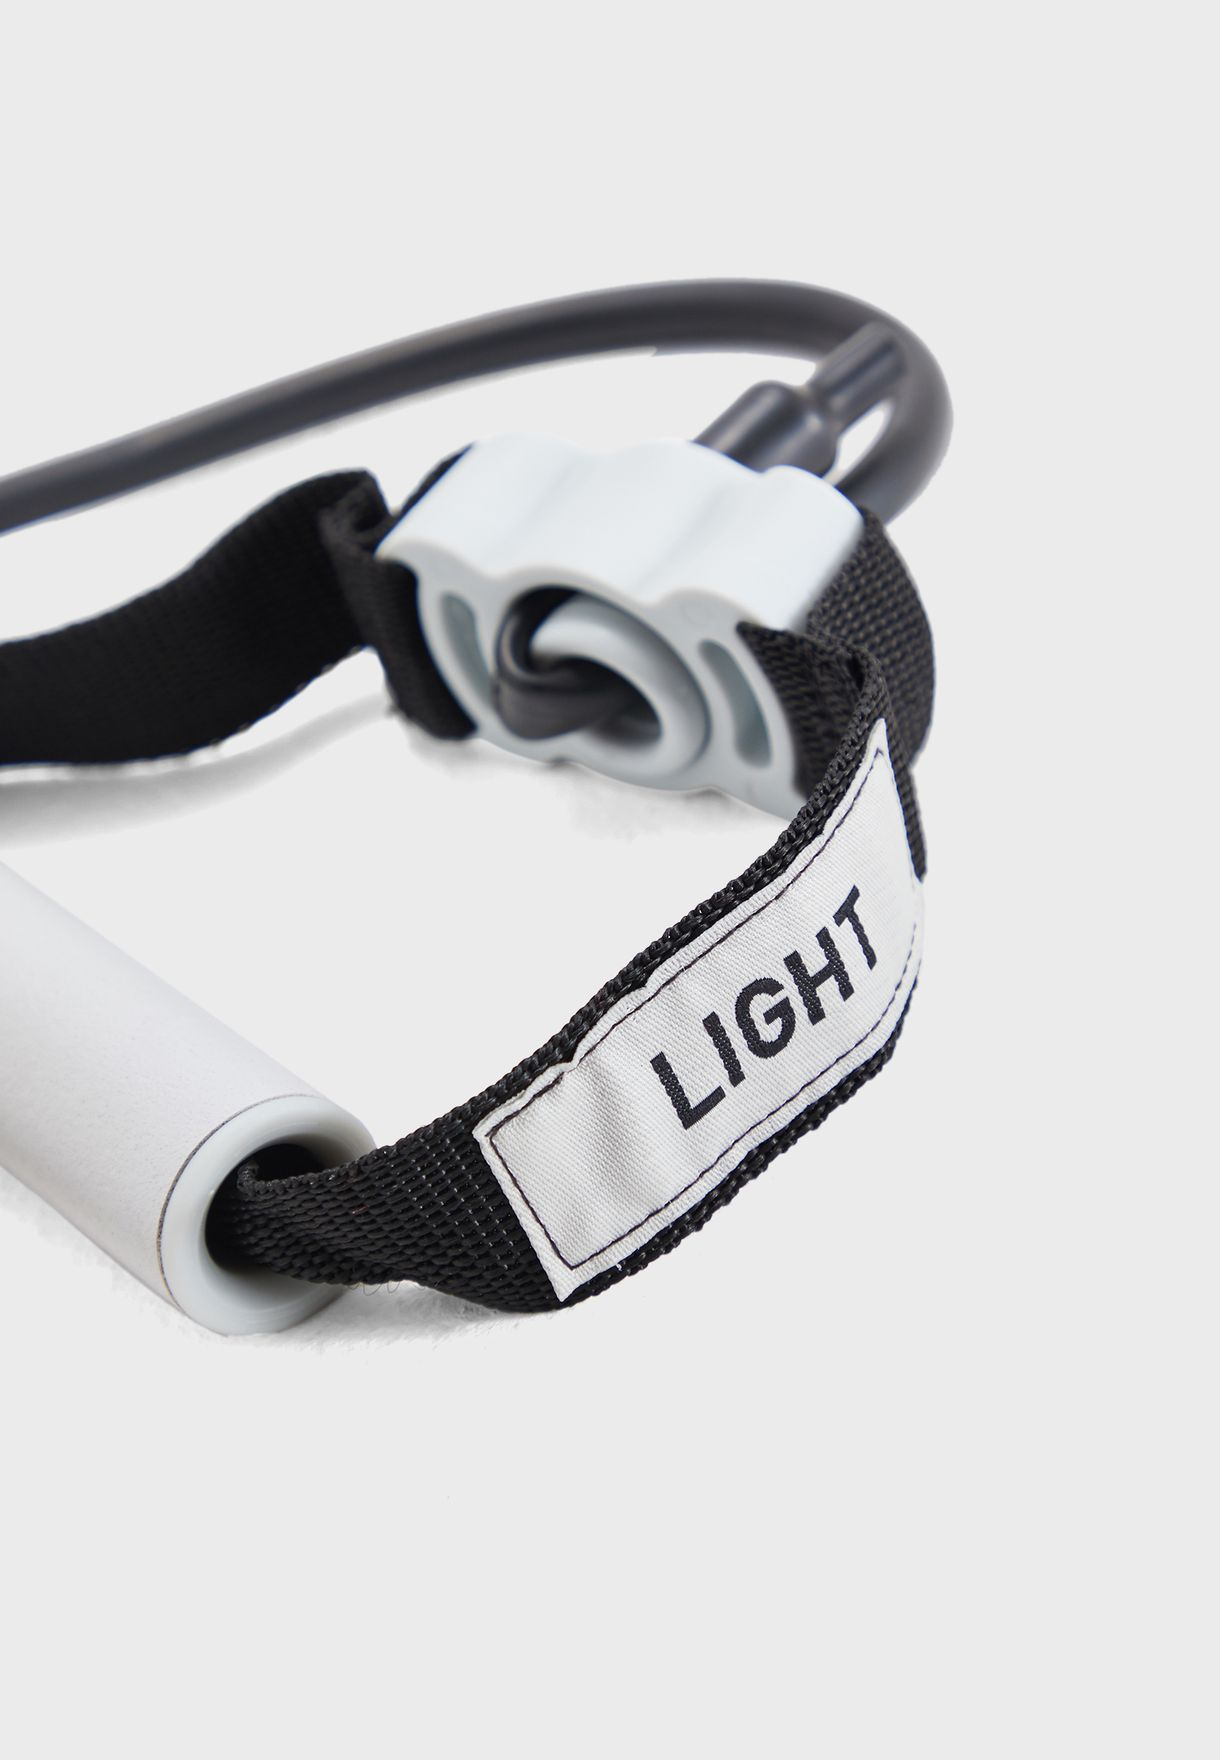 Adjustable Light Resistance Tube